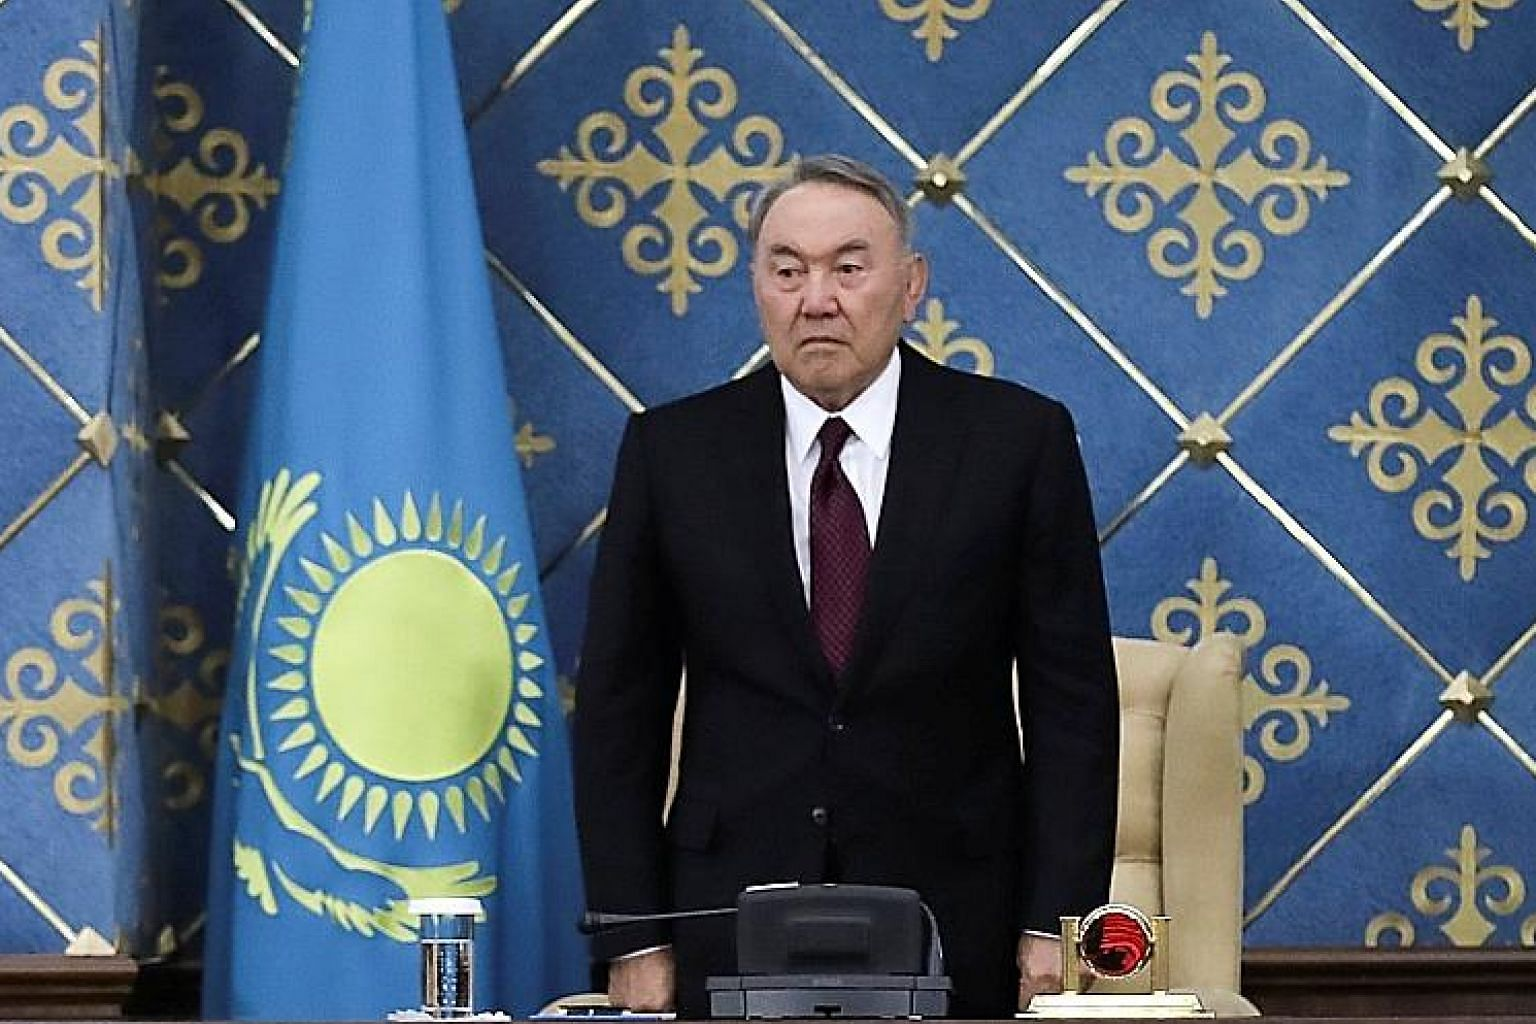 Acting President of Kazakhstan Kassym-Jomart Tokayev (bottom) and chairman of the Lower House of Parliament Nurlan Nigmatulin (centre) applauding former president Nursultan Nazarbayev (top) during a joint session of the Houses of Parliament yesterday